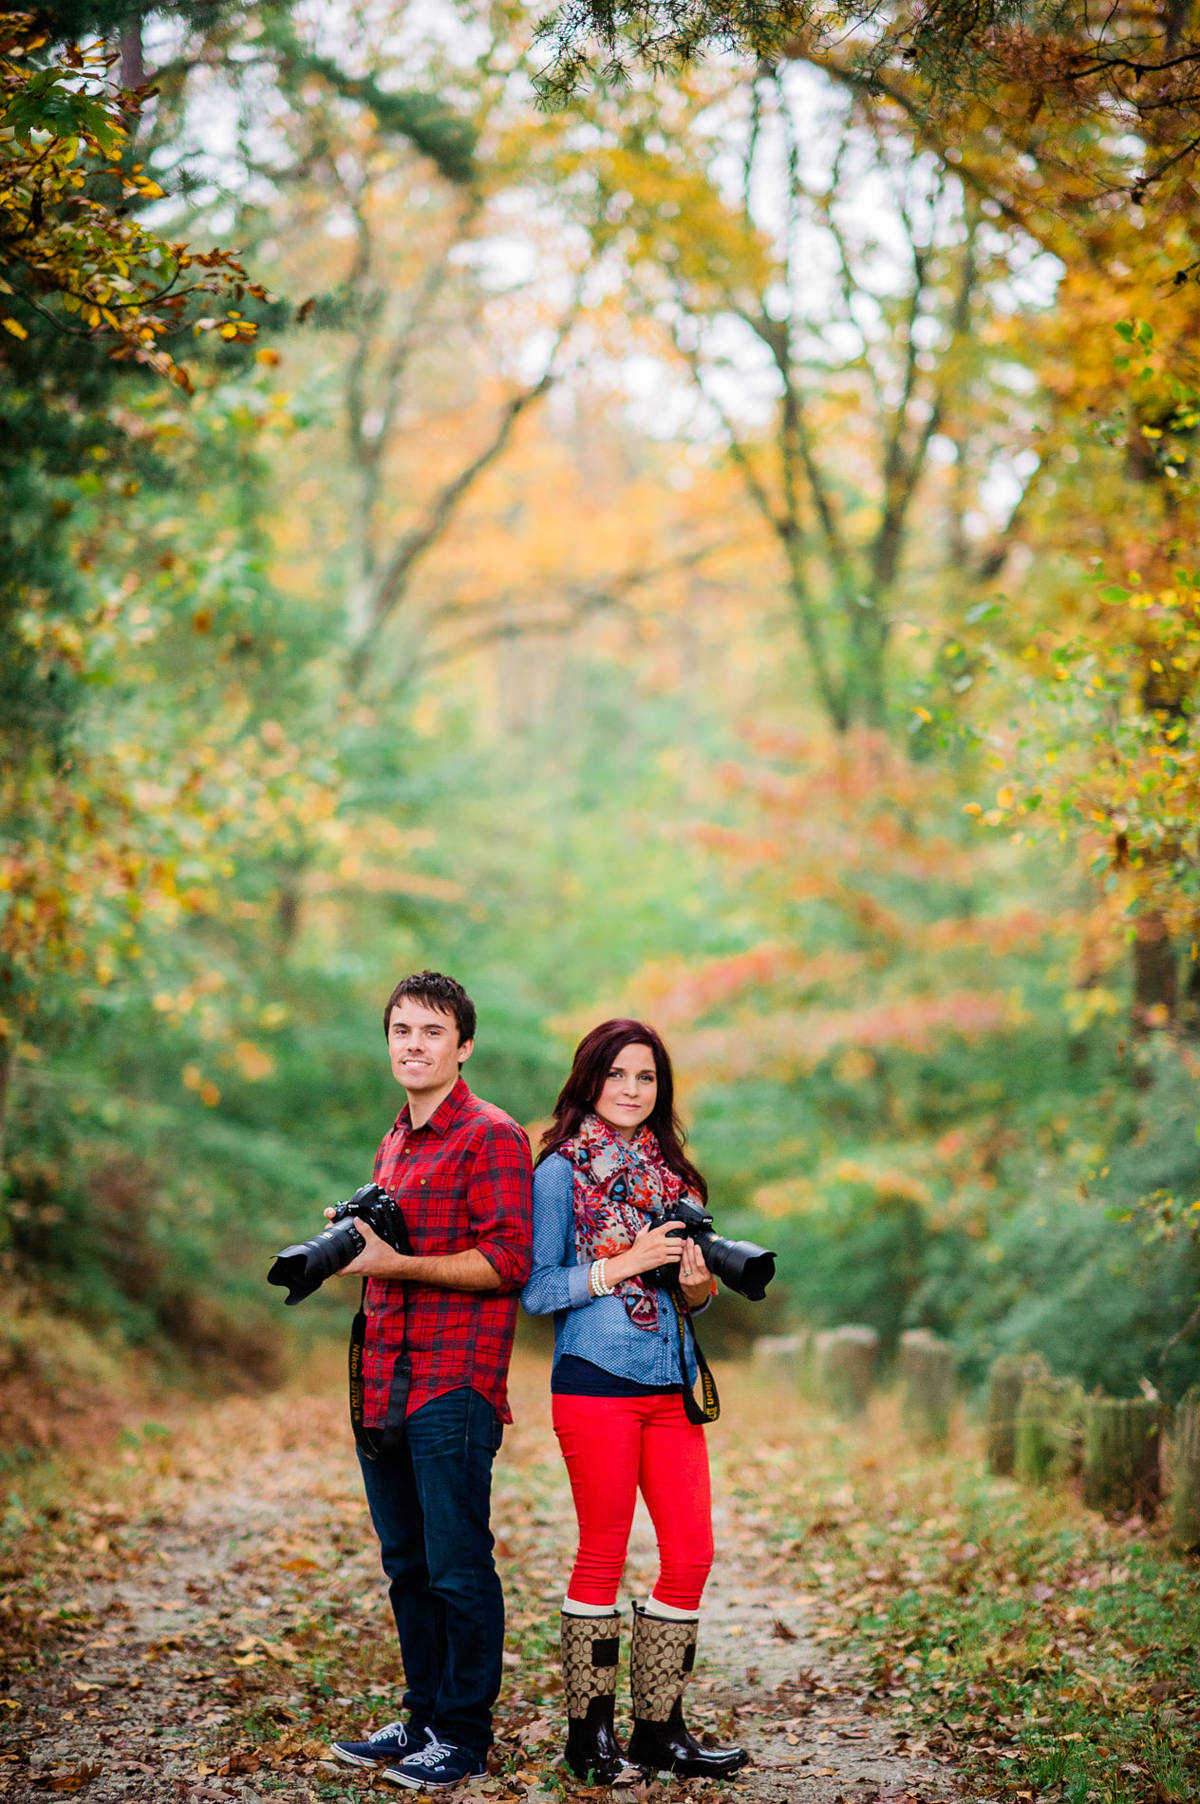 photos of husband and wife photography business